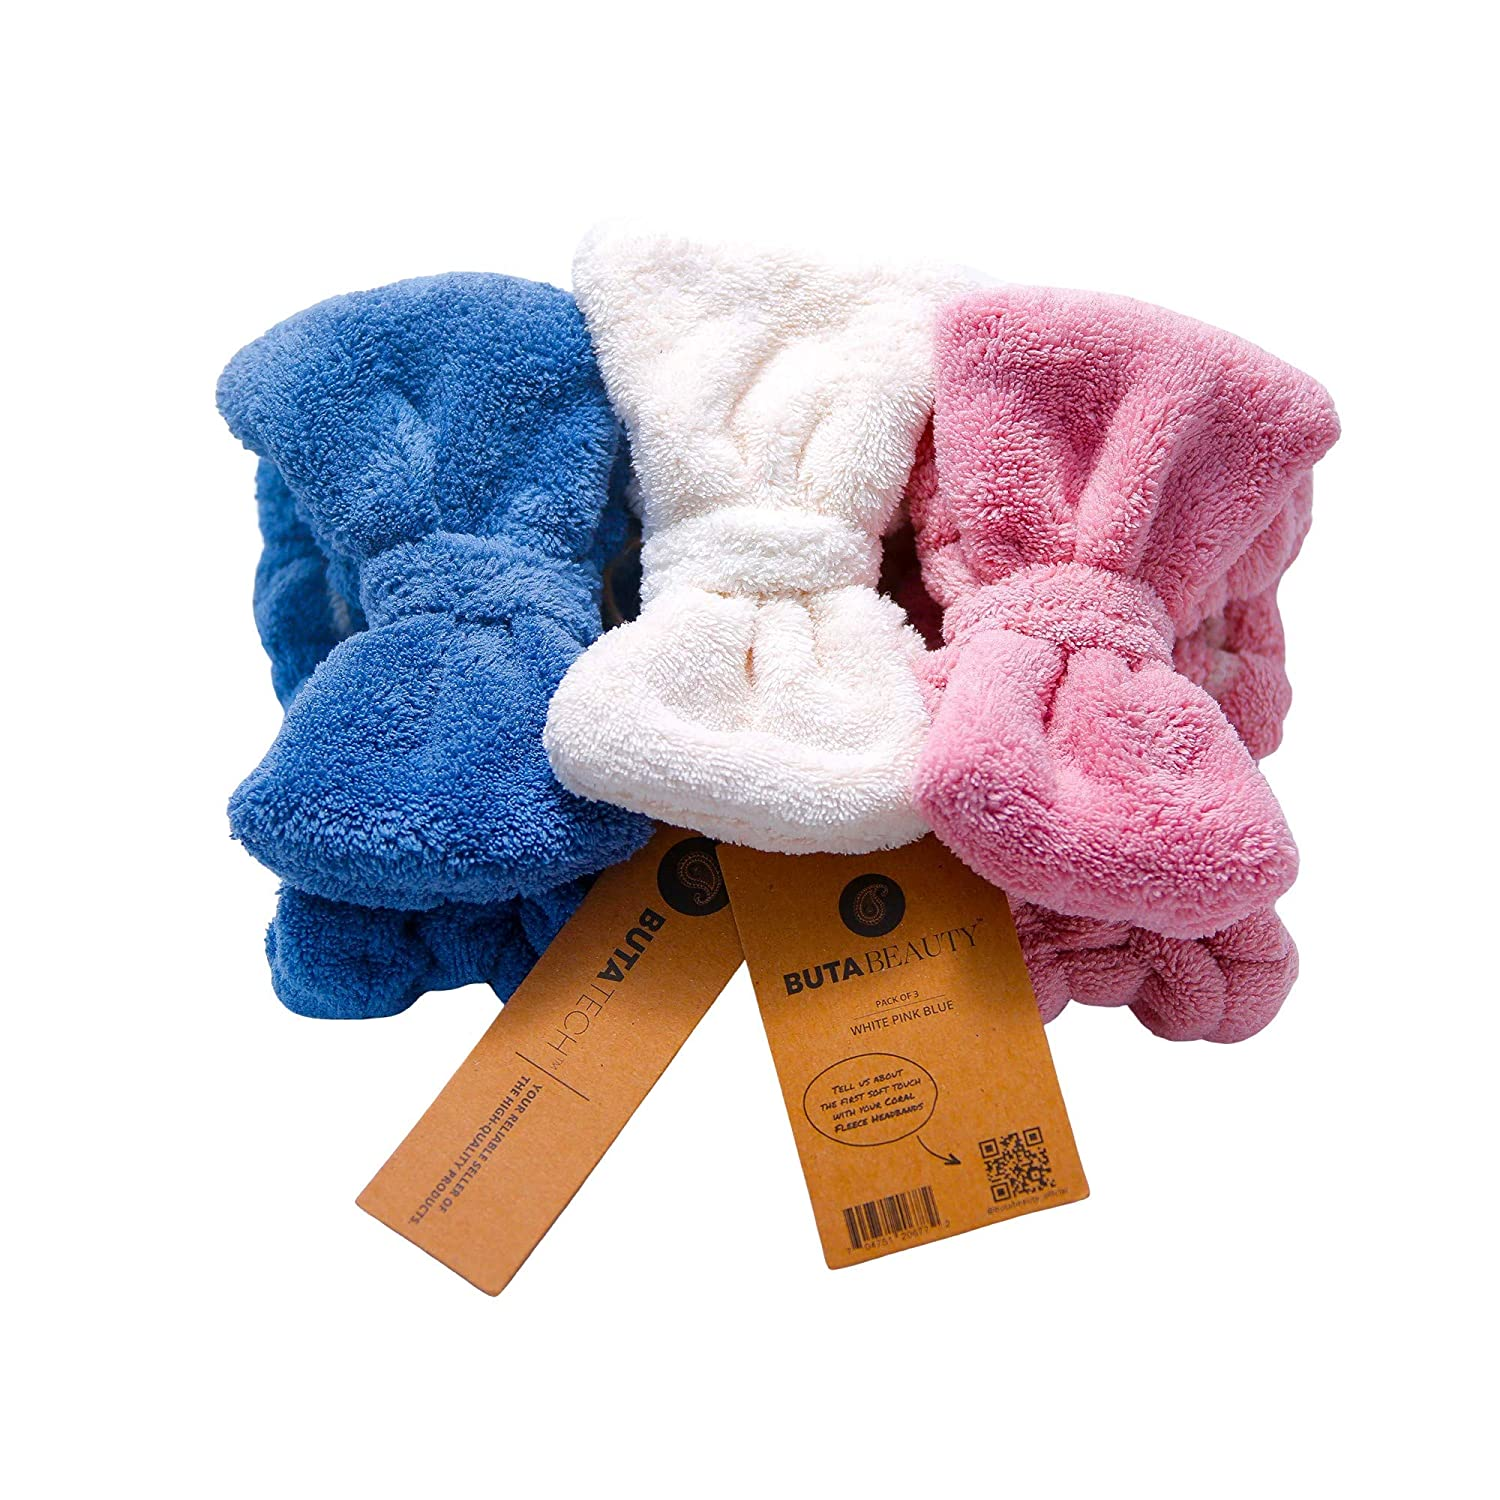 Buta Beauty makeup headband - Towel headband for washing face made with terry cloth available in 3 colors (Pack of 3, White Blue Pink)